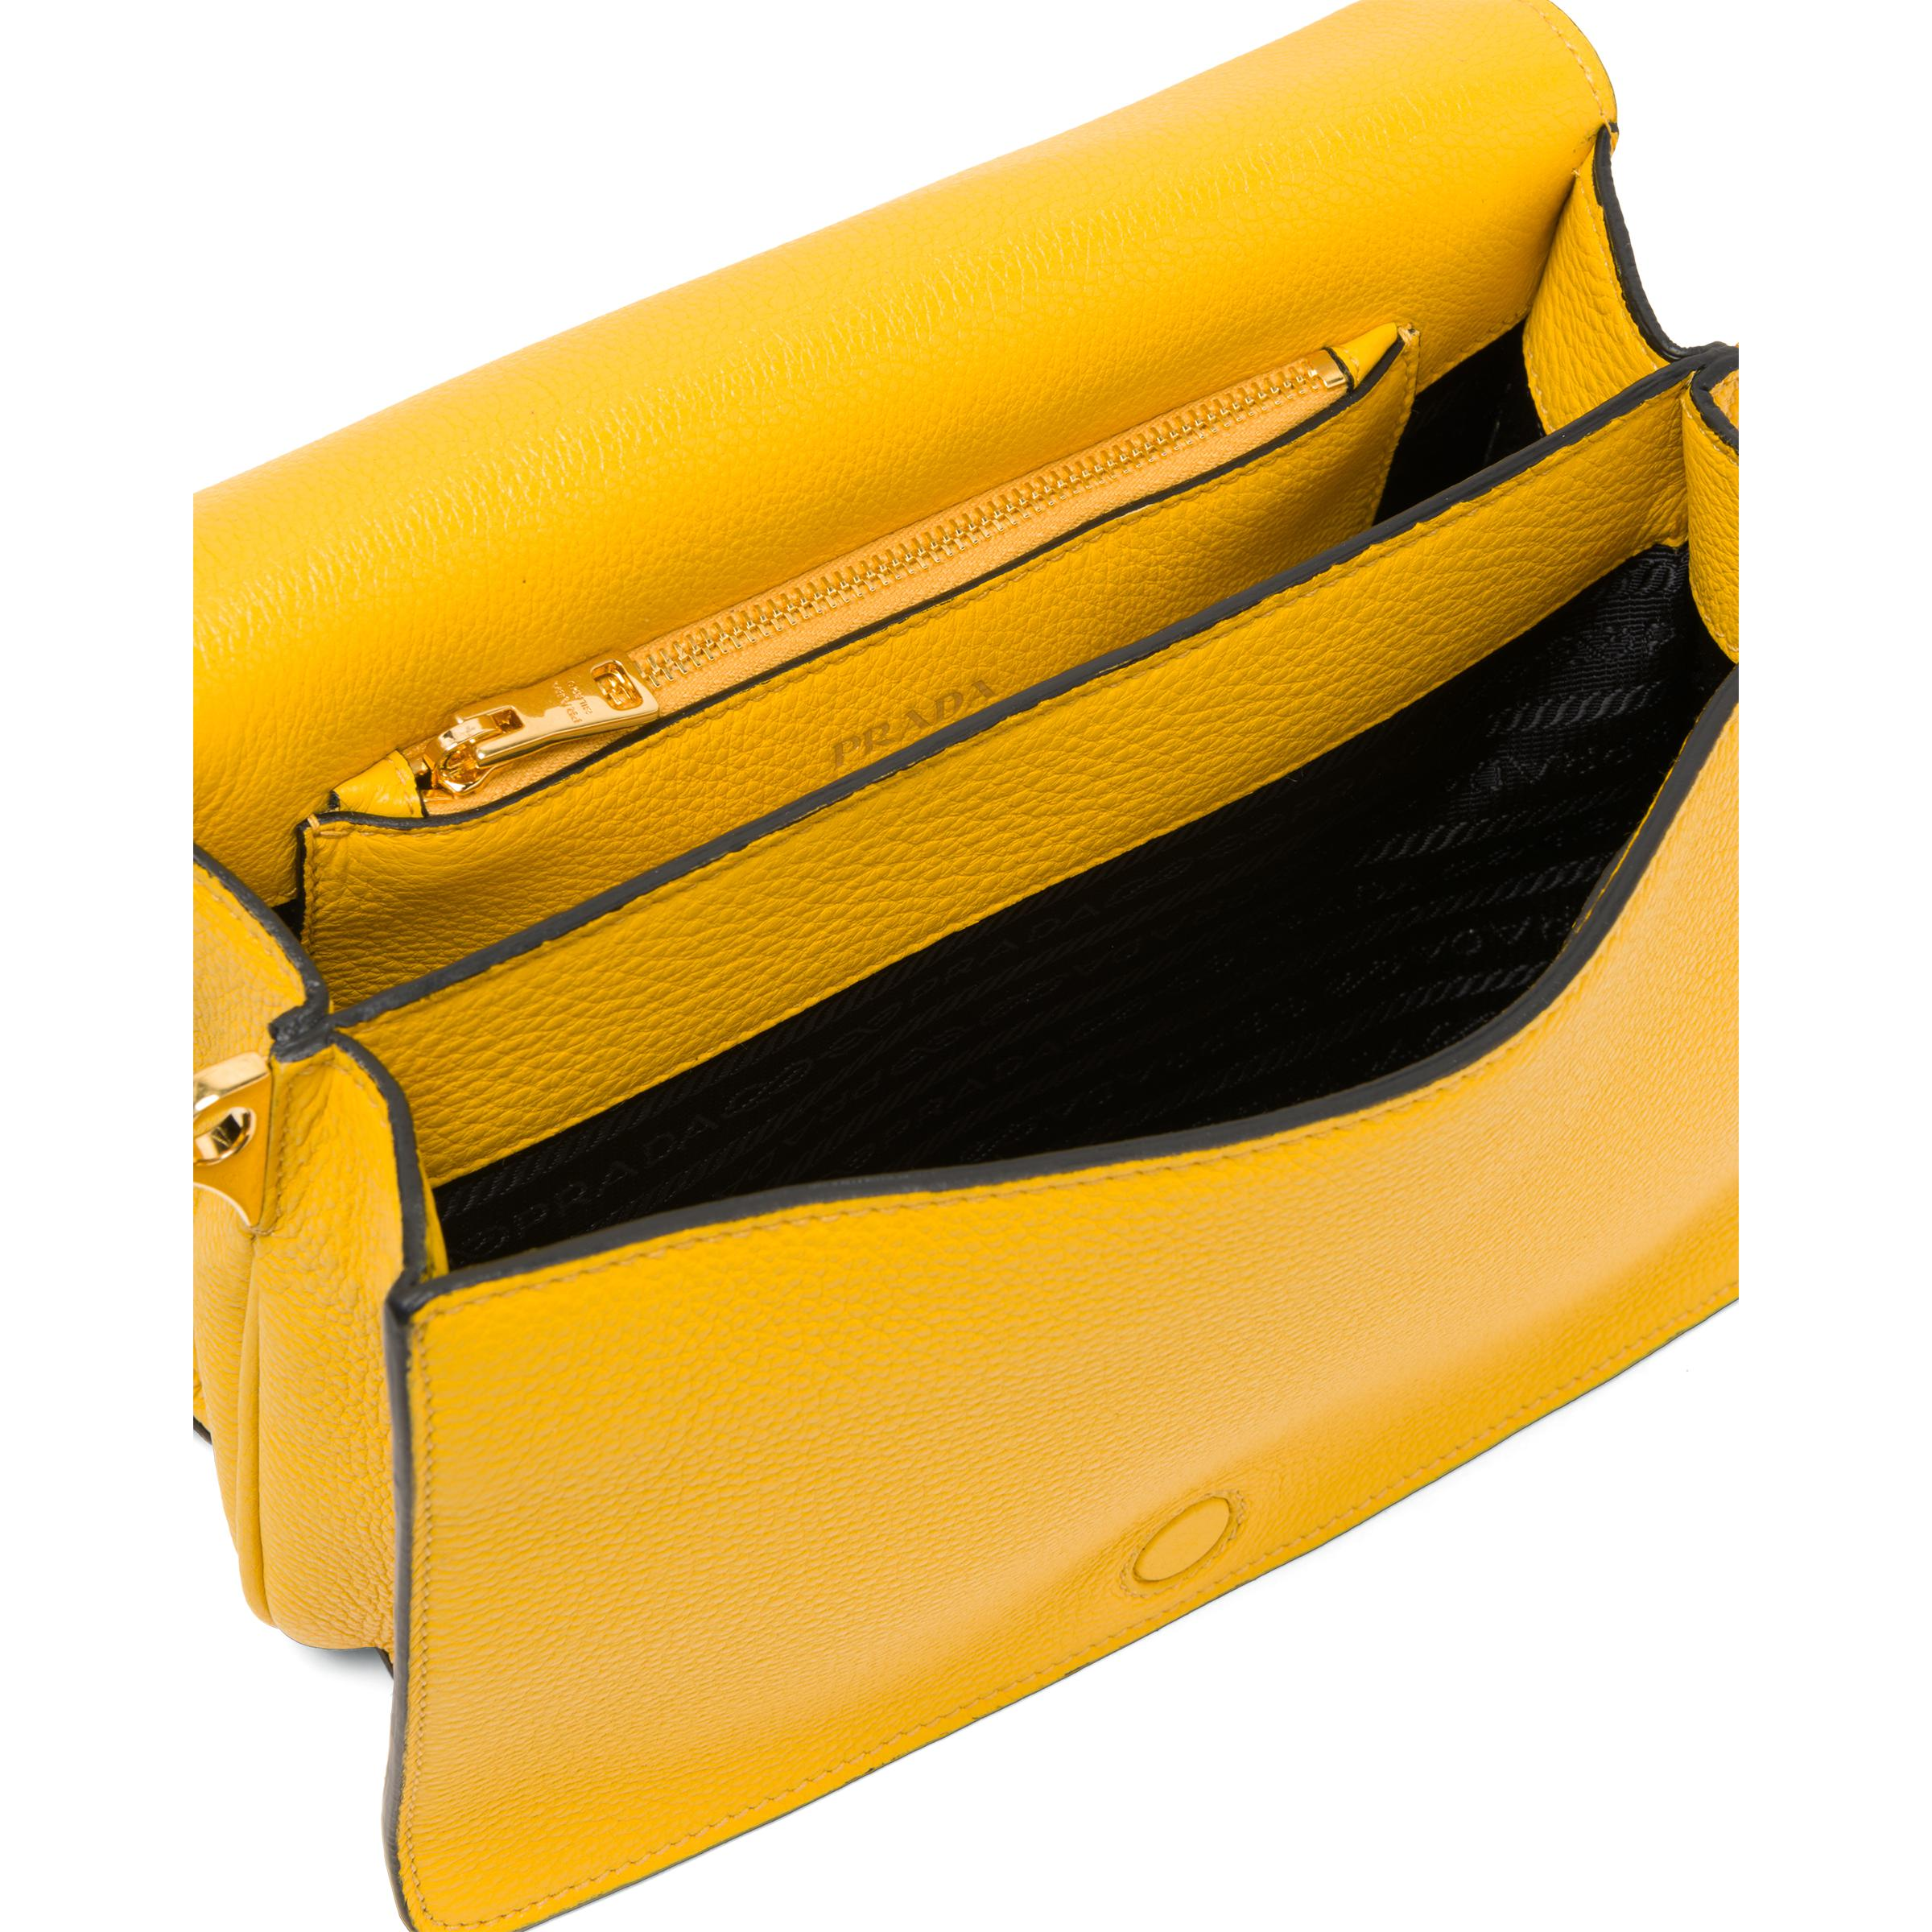 Leather Shoulder Bag Women Sunny Yellow 4